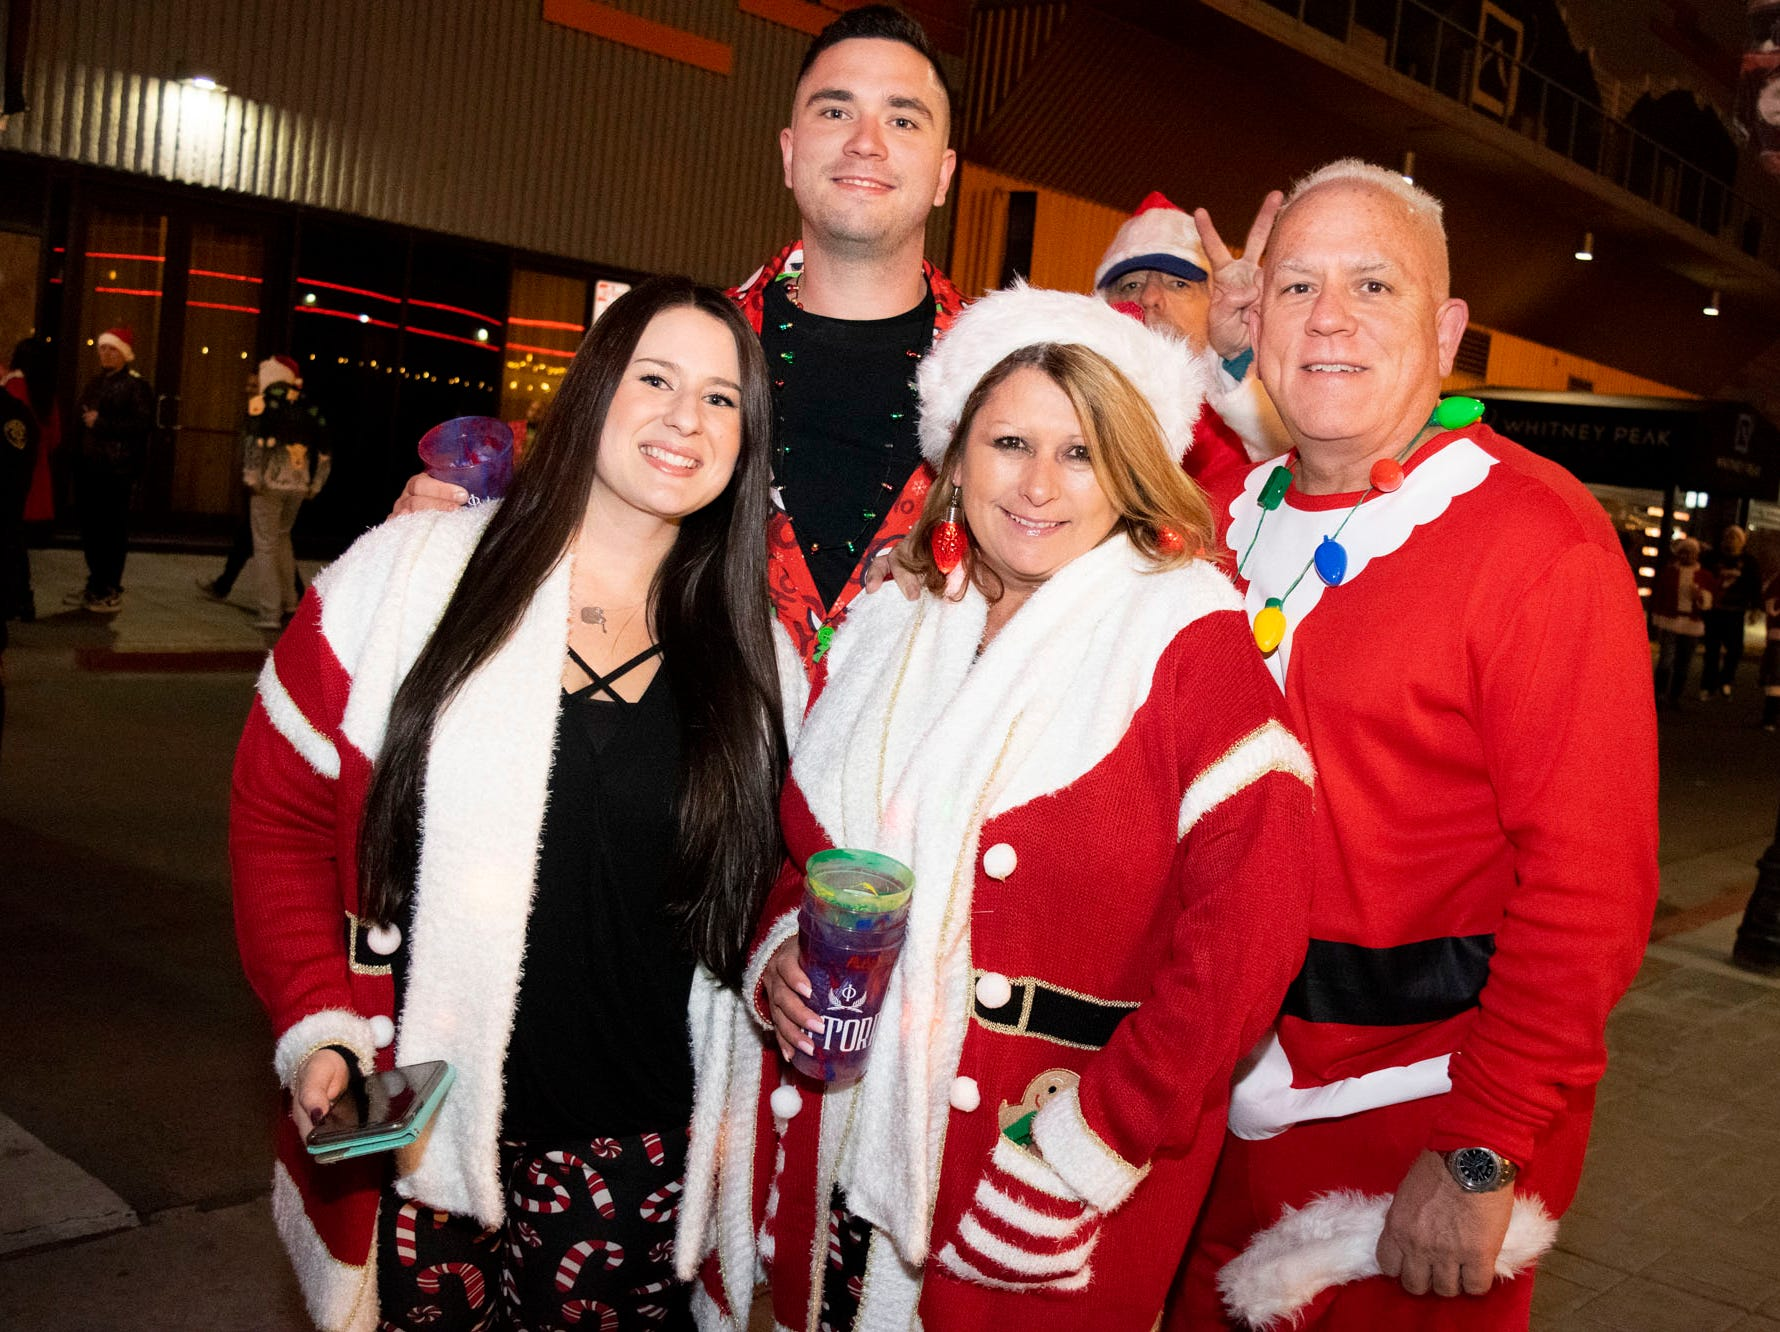 Elves, Christmas trees, Grinches, and yes, Santas, all get merry at the Reno Santa Pub Crawl on Saturday, Dec. 15, 2018. Reno, Nev.